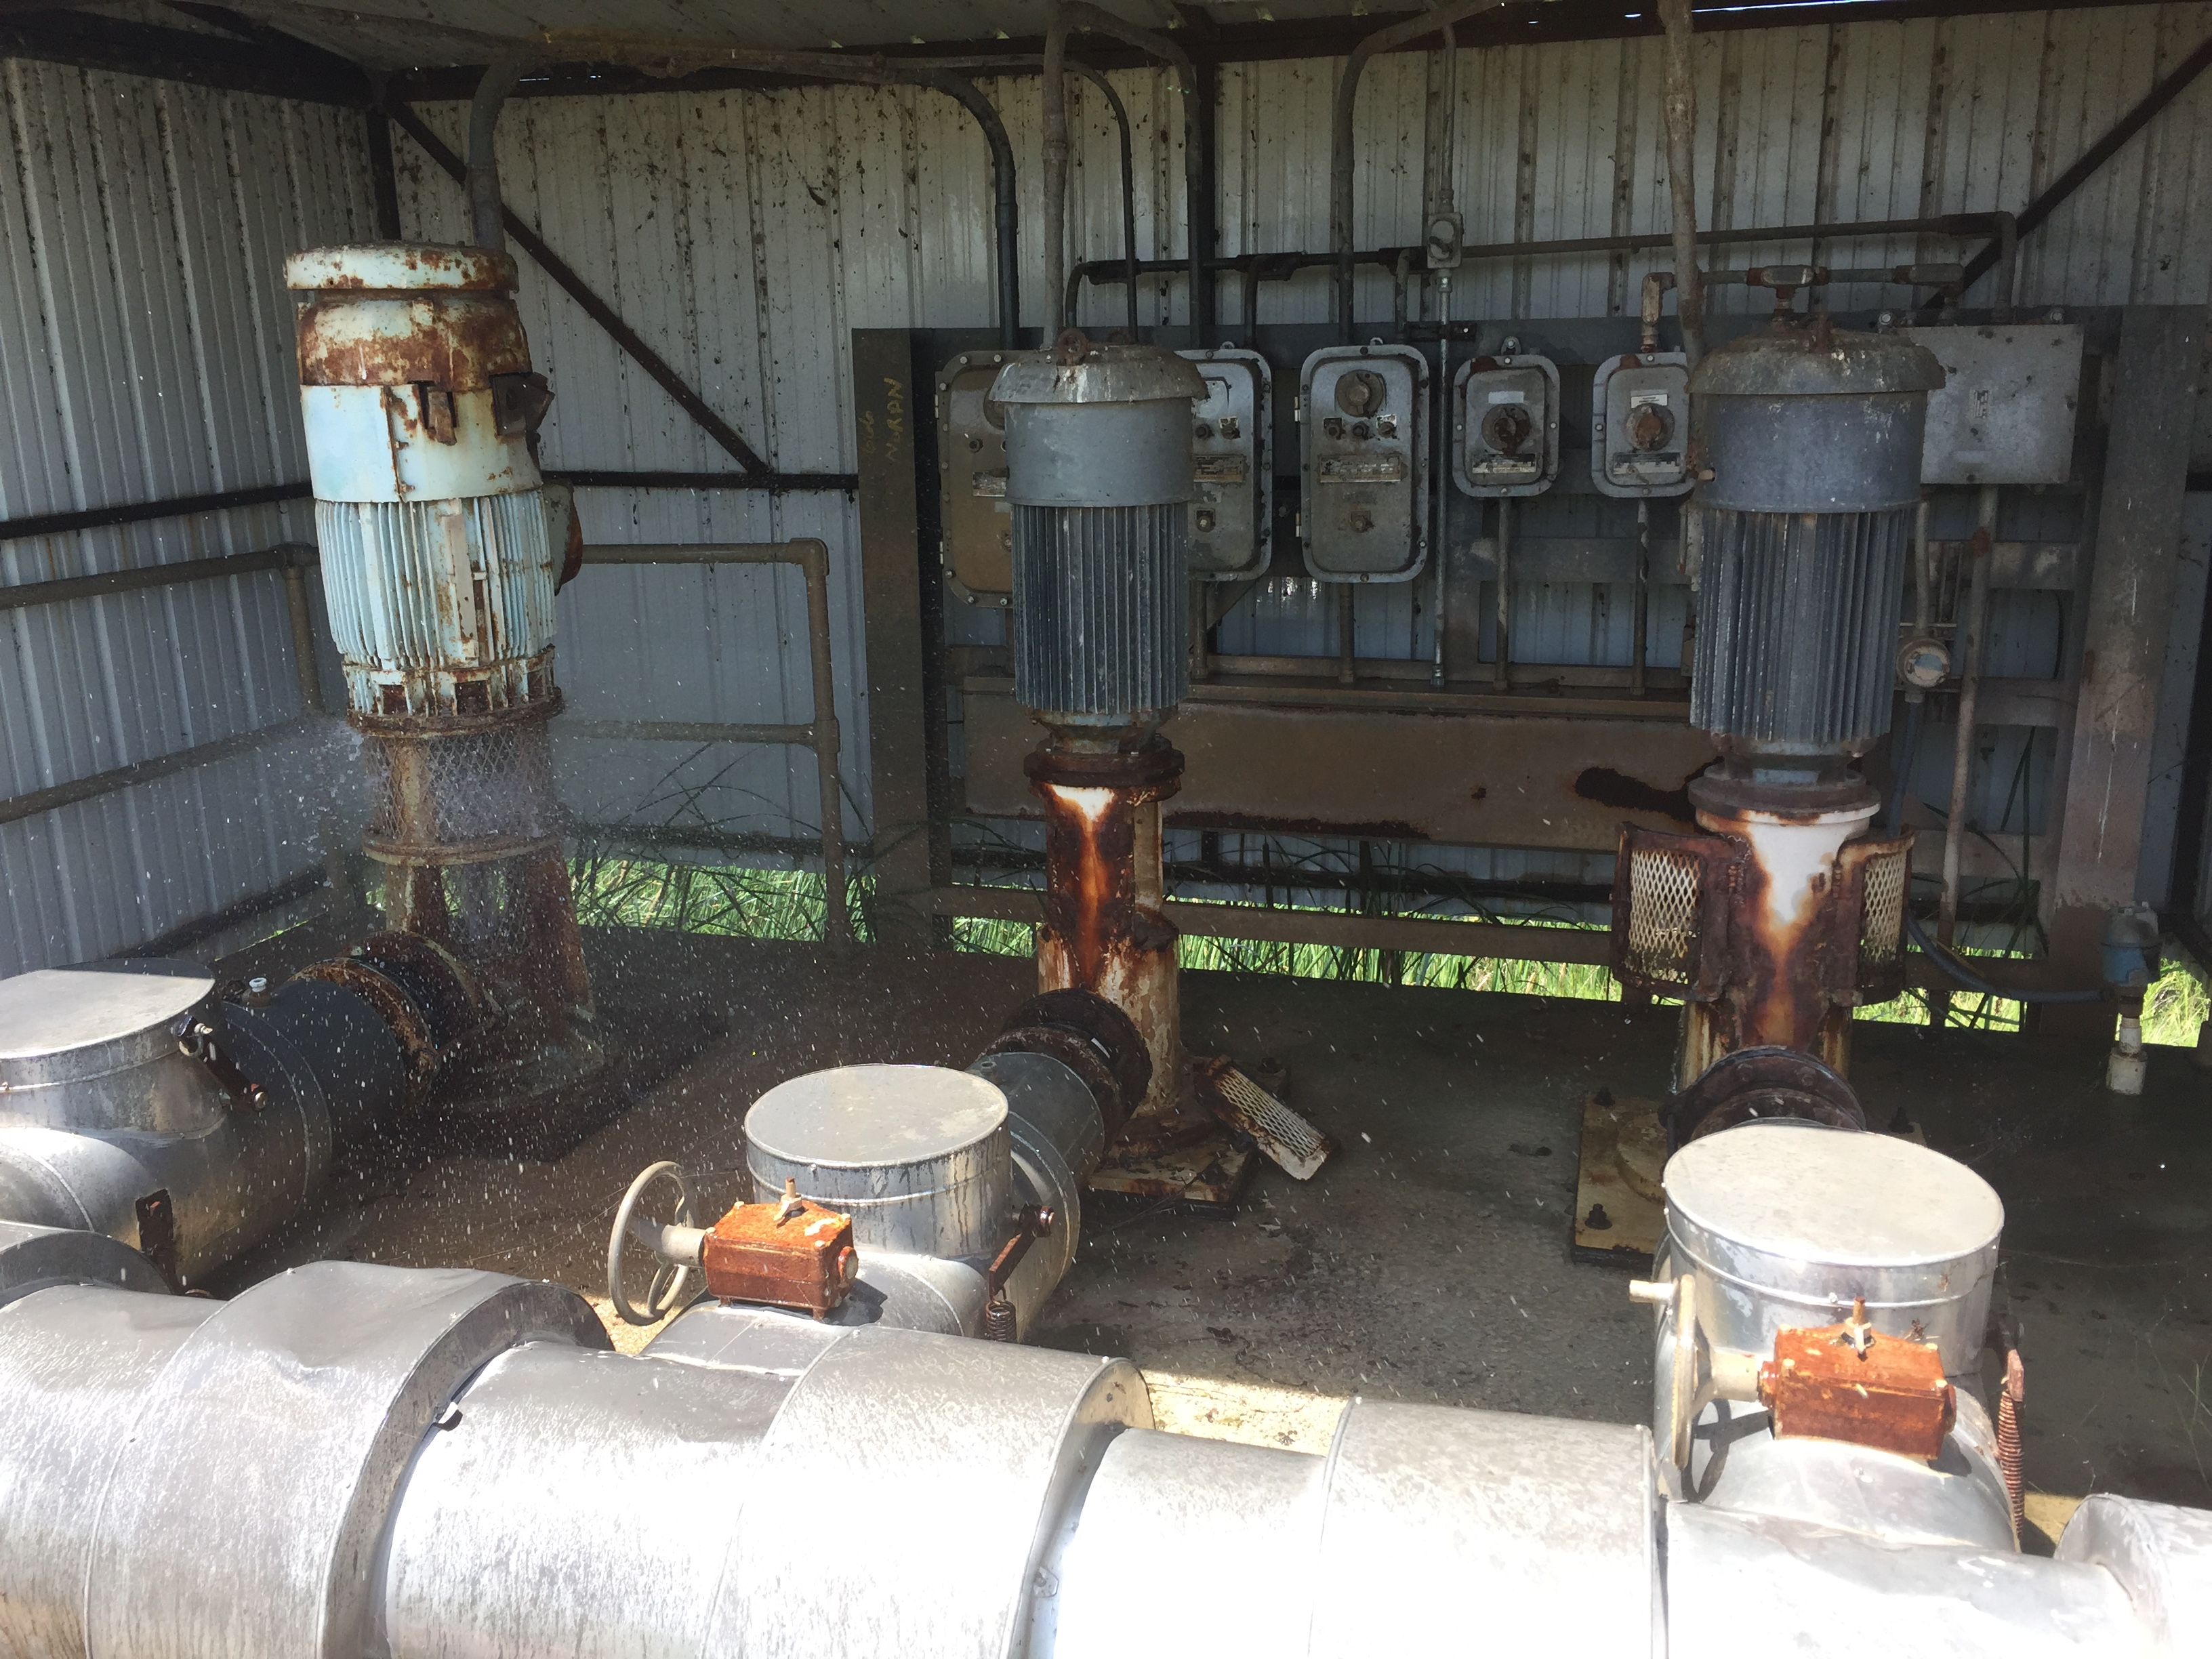 recycle pump station showing rusted and old pumps